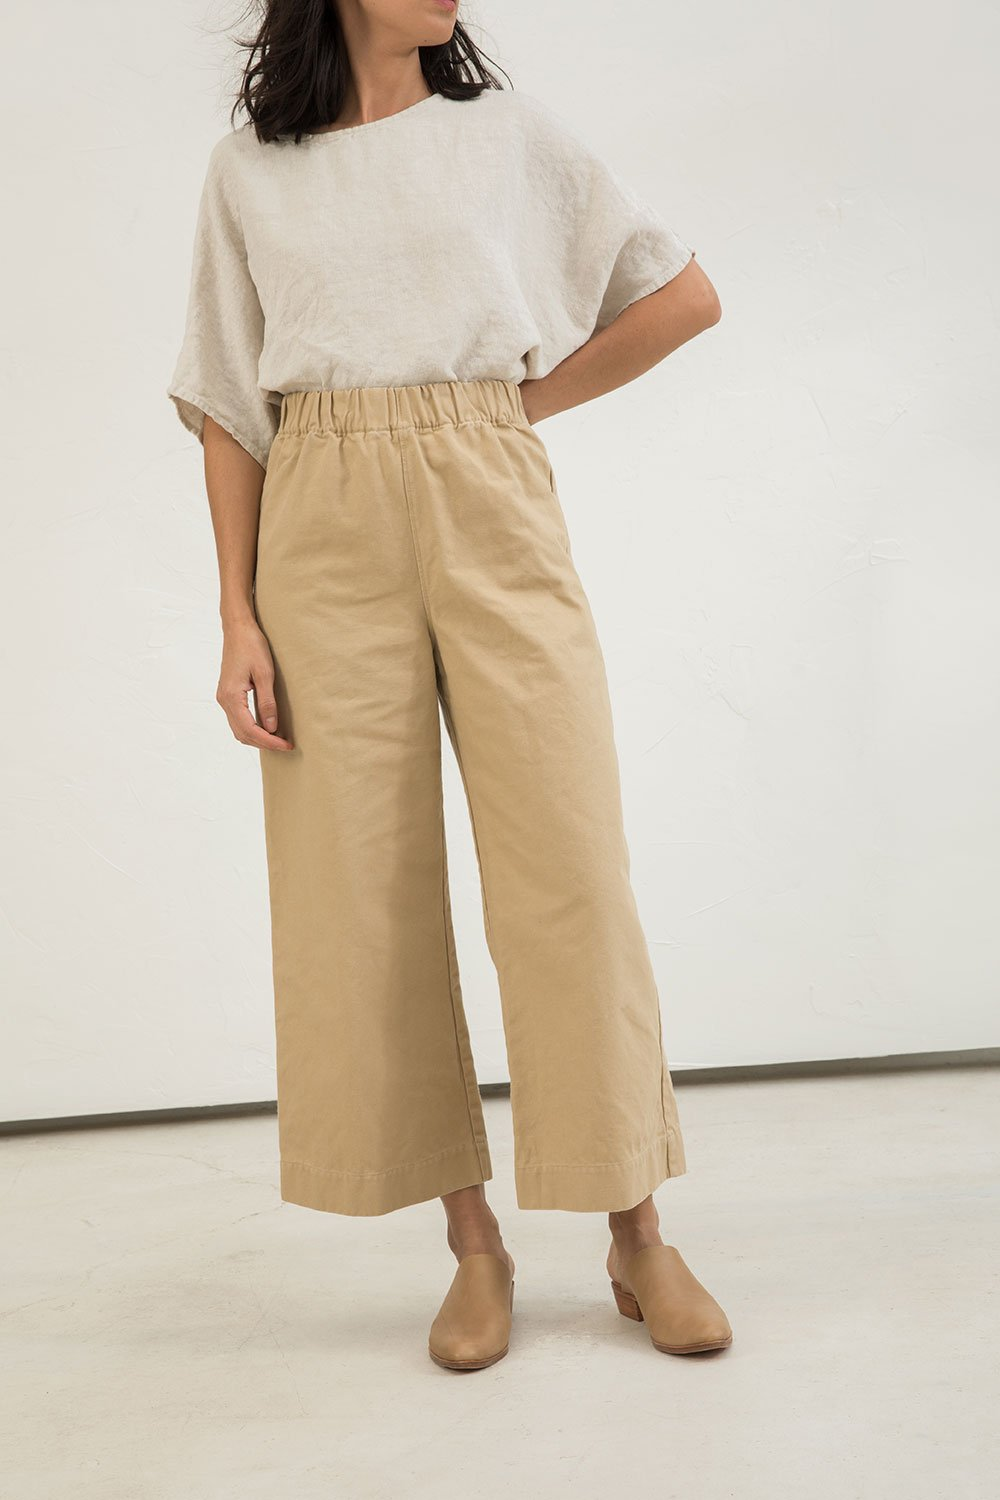 Florence Pant in Cotton Canvas Khaki - Lisa-Small Regular